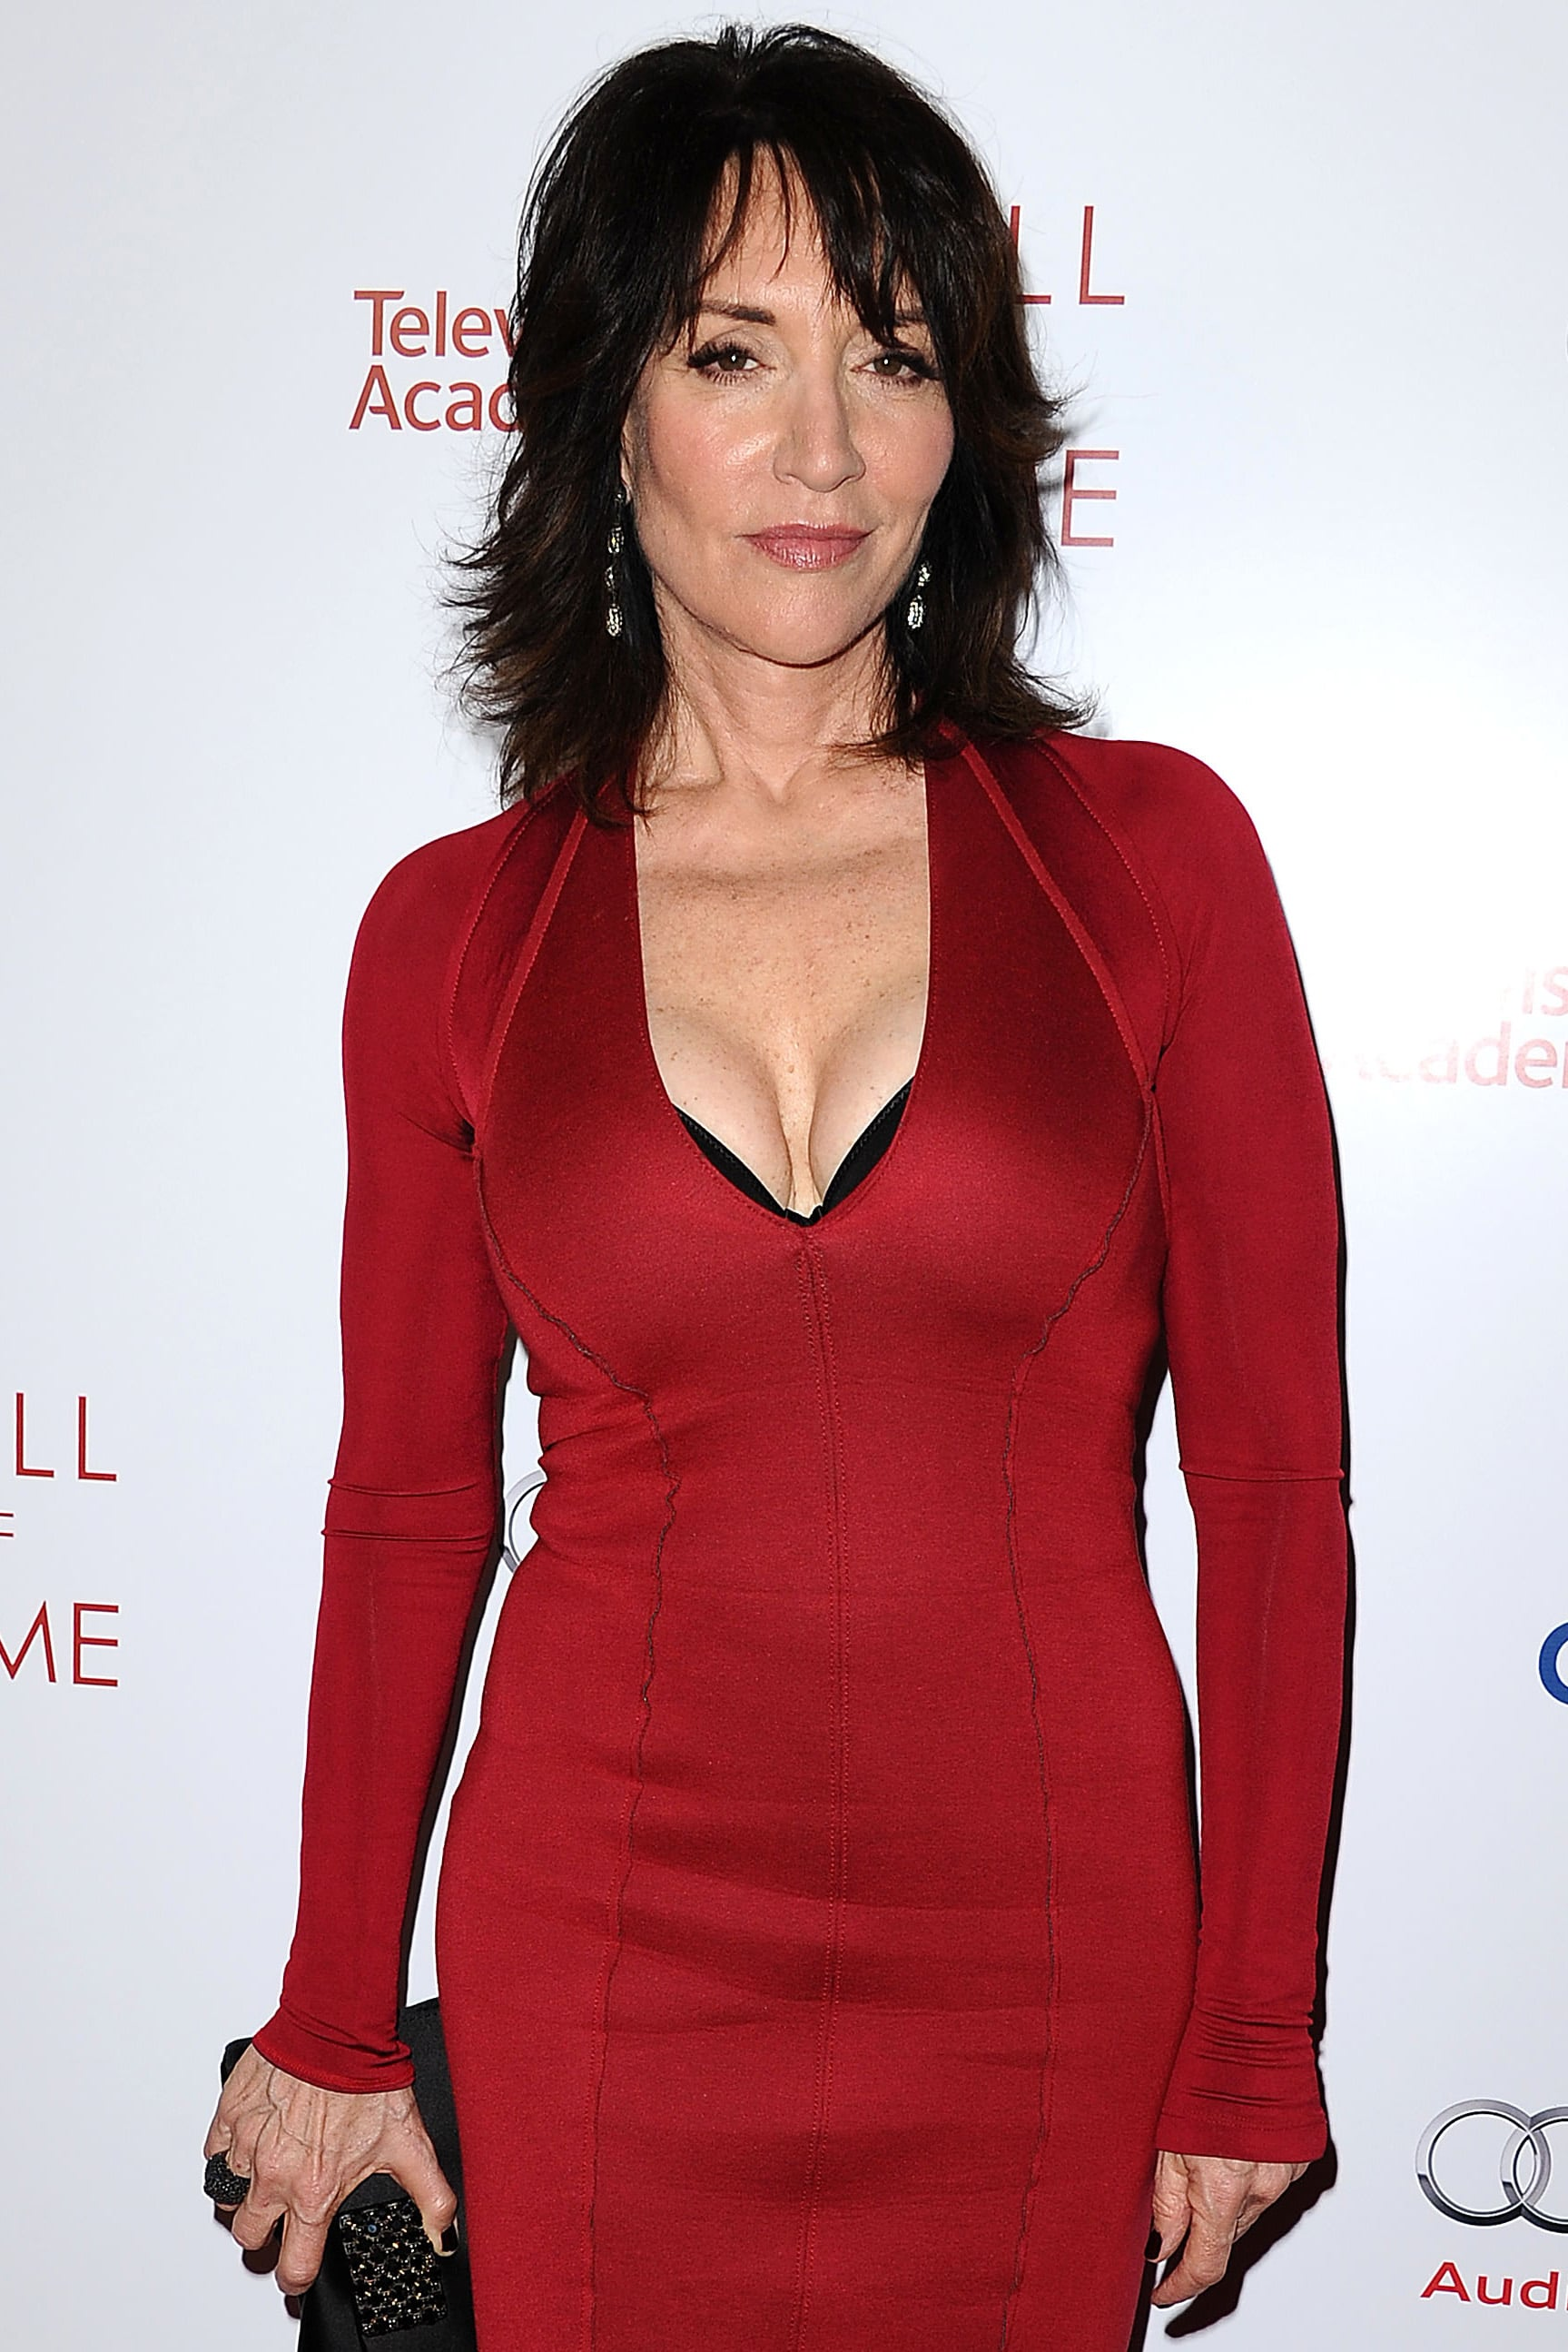 Katey Sagal joined Pitch Perfect 2 as the mother of Hailee Steinfeld's character.